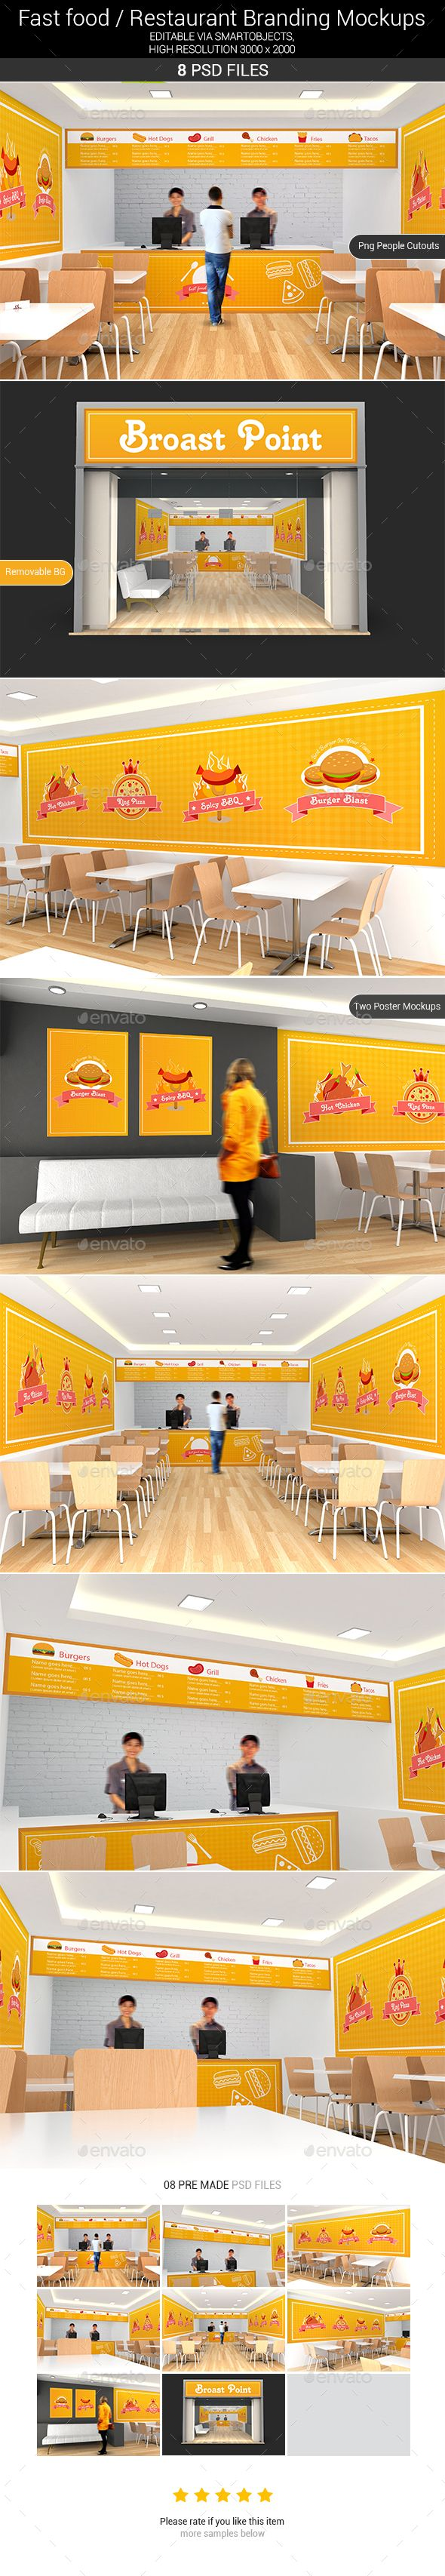 Fast food / Restaurant Branding Mockups — Photoshop PSD #stationery mockups #wallpaper • Available here → https://graphicriver.net/item/fast-food-restaurant-branding-mockups/18786154?ref=pxcr